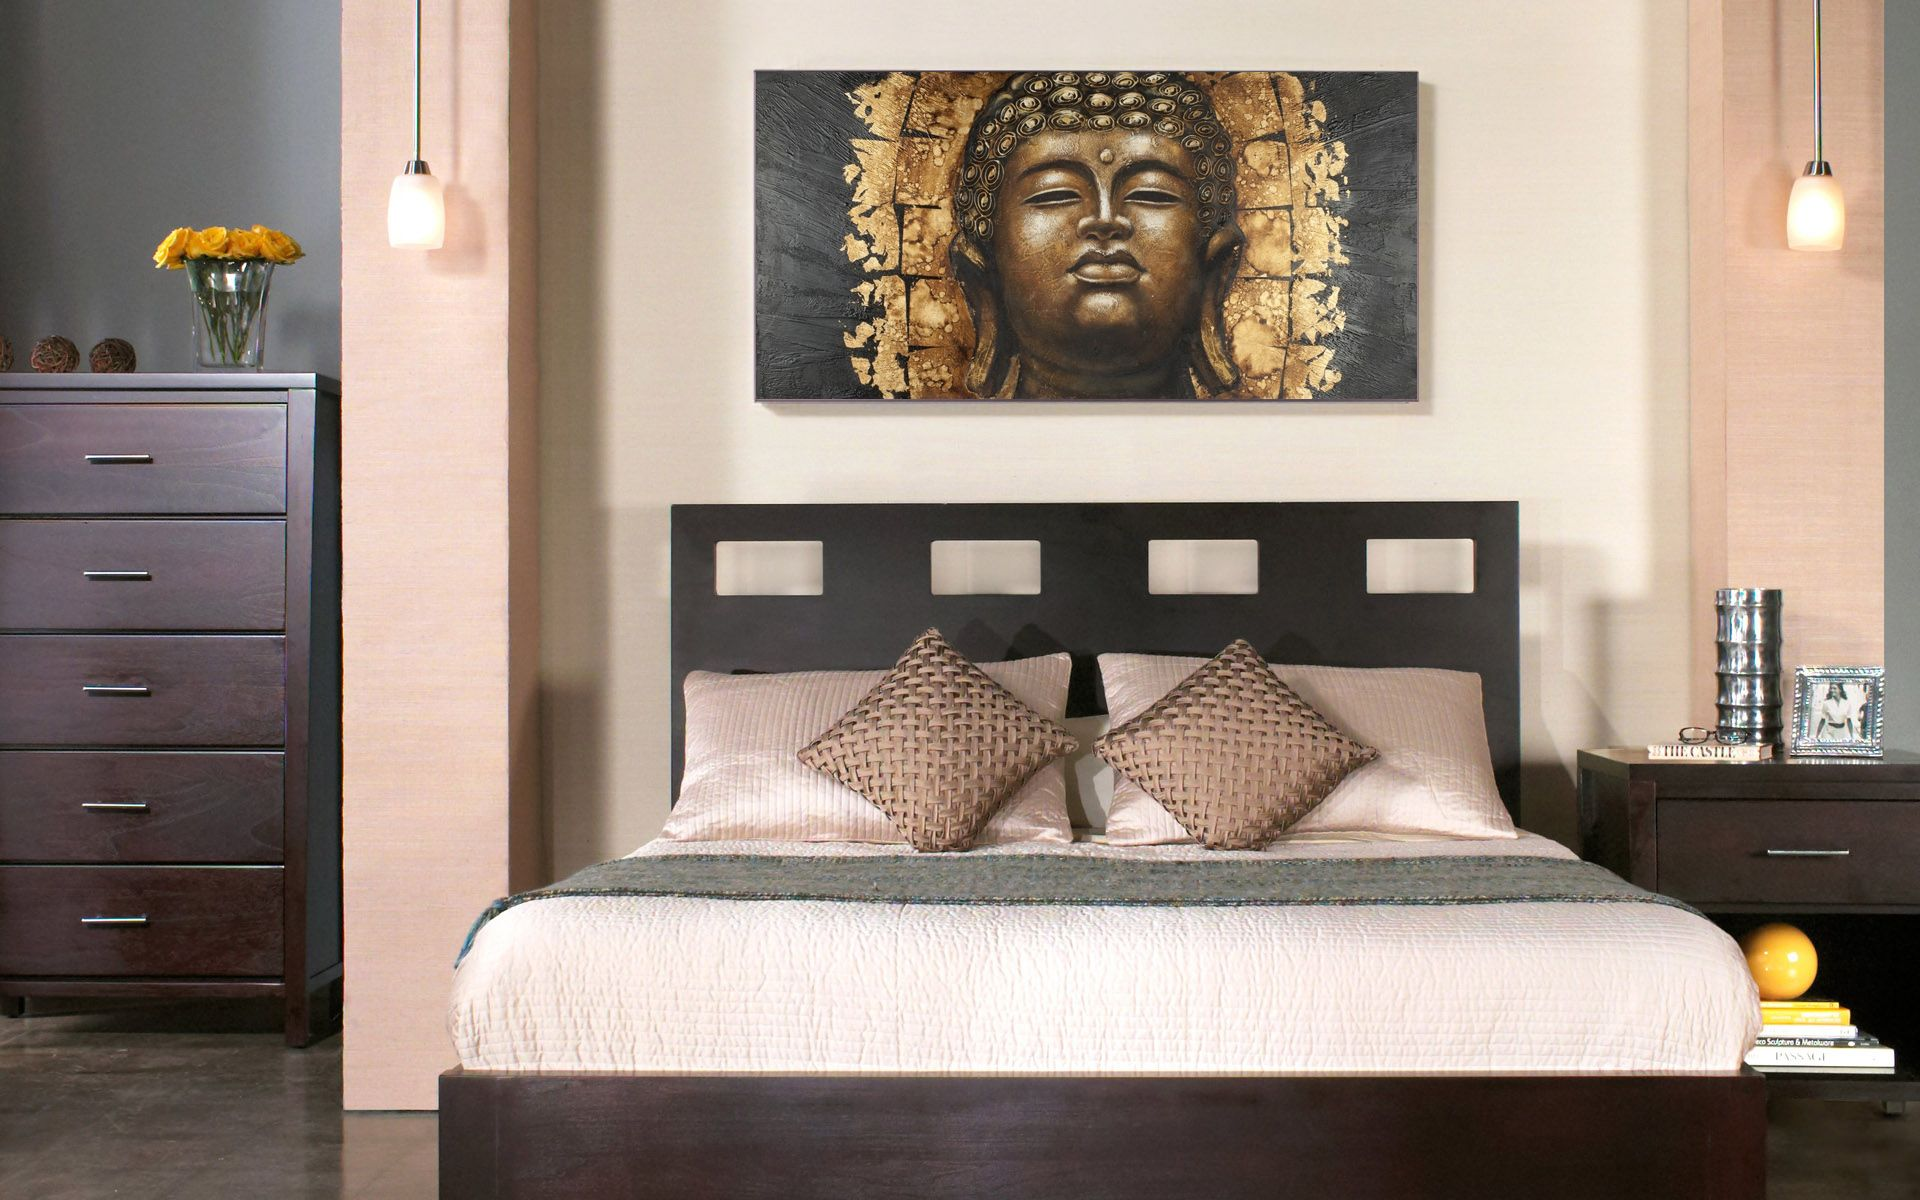 17 Best images about Buddha Paintings in Modern Interior on Pinterest    Beautiful  Canvases and The o jays. 17 Best images about Buddha Paintings in Modern Interior on